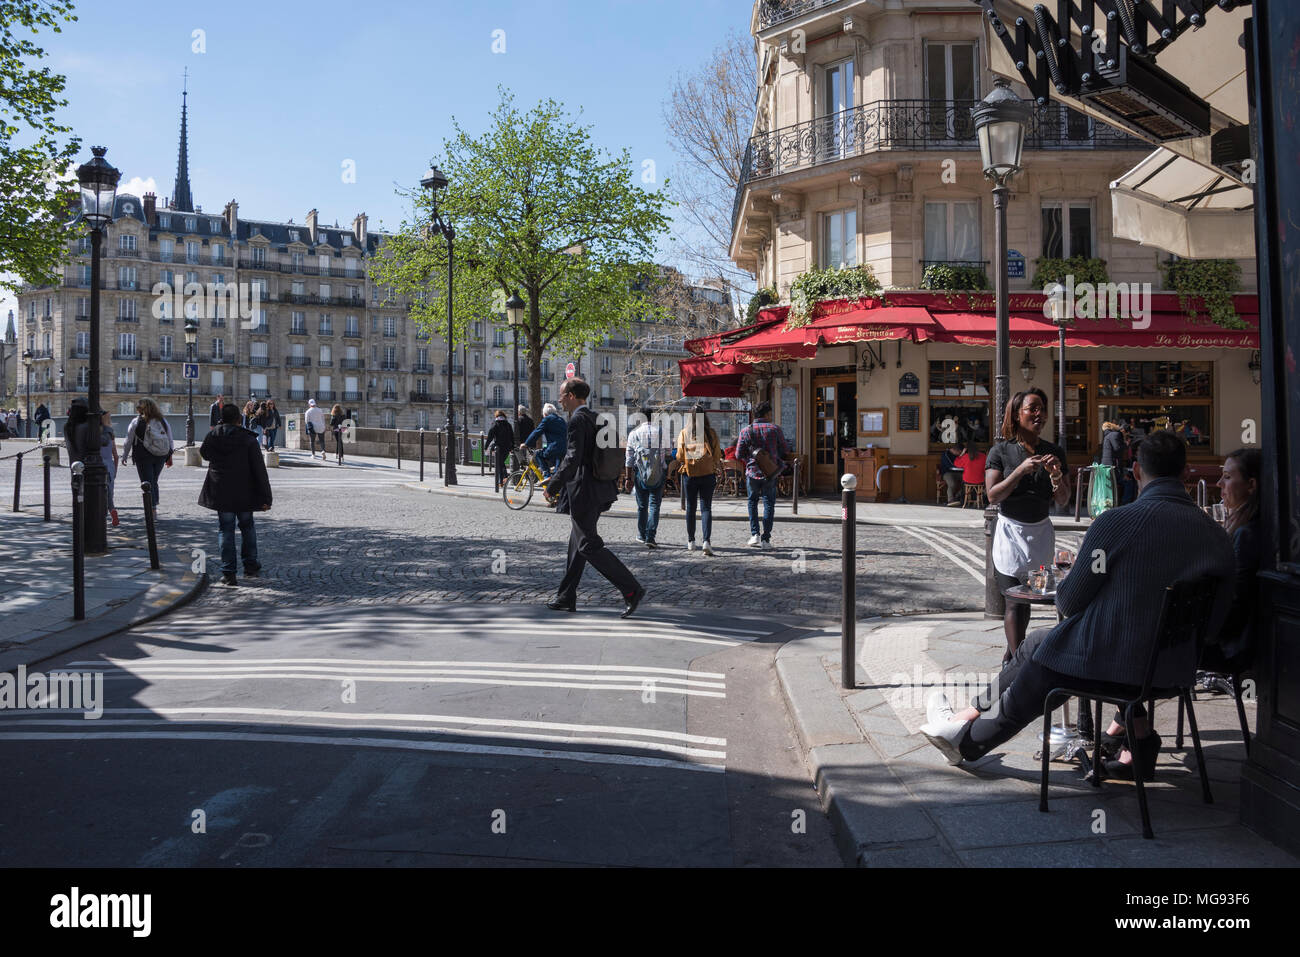 Cafe at the corner of Rue Jean du Bellay, Ile Saint Louis, Paris, France - Stock Image